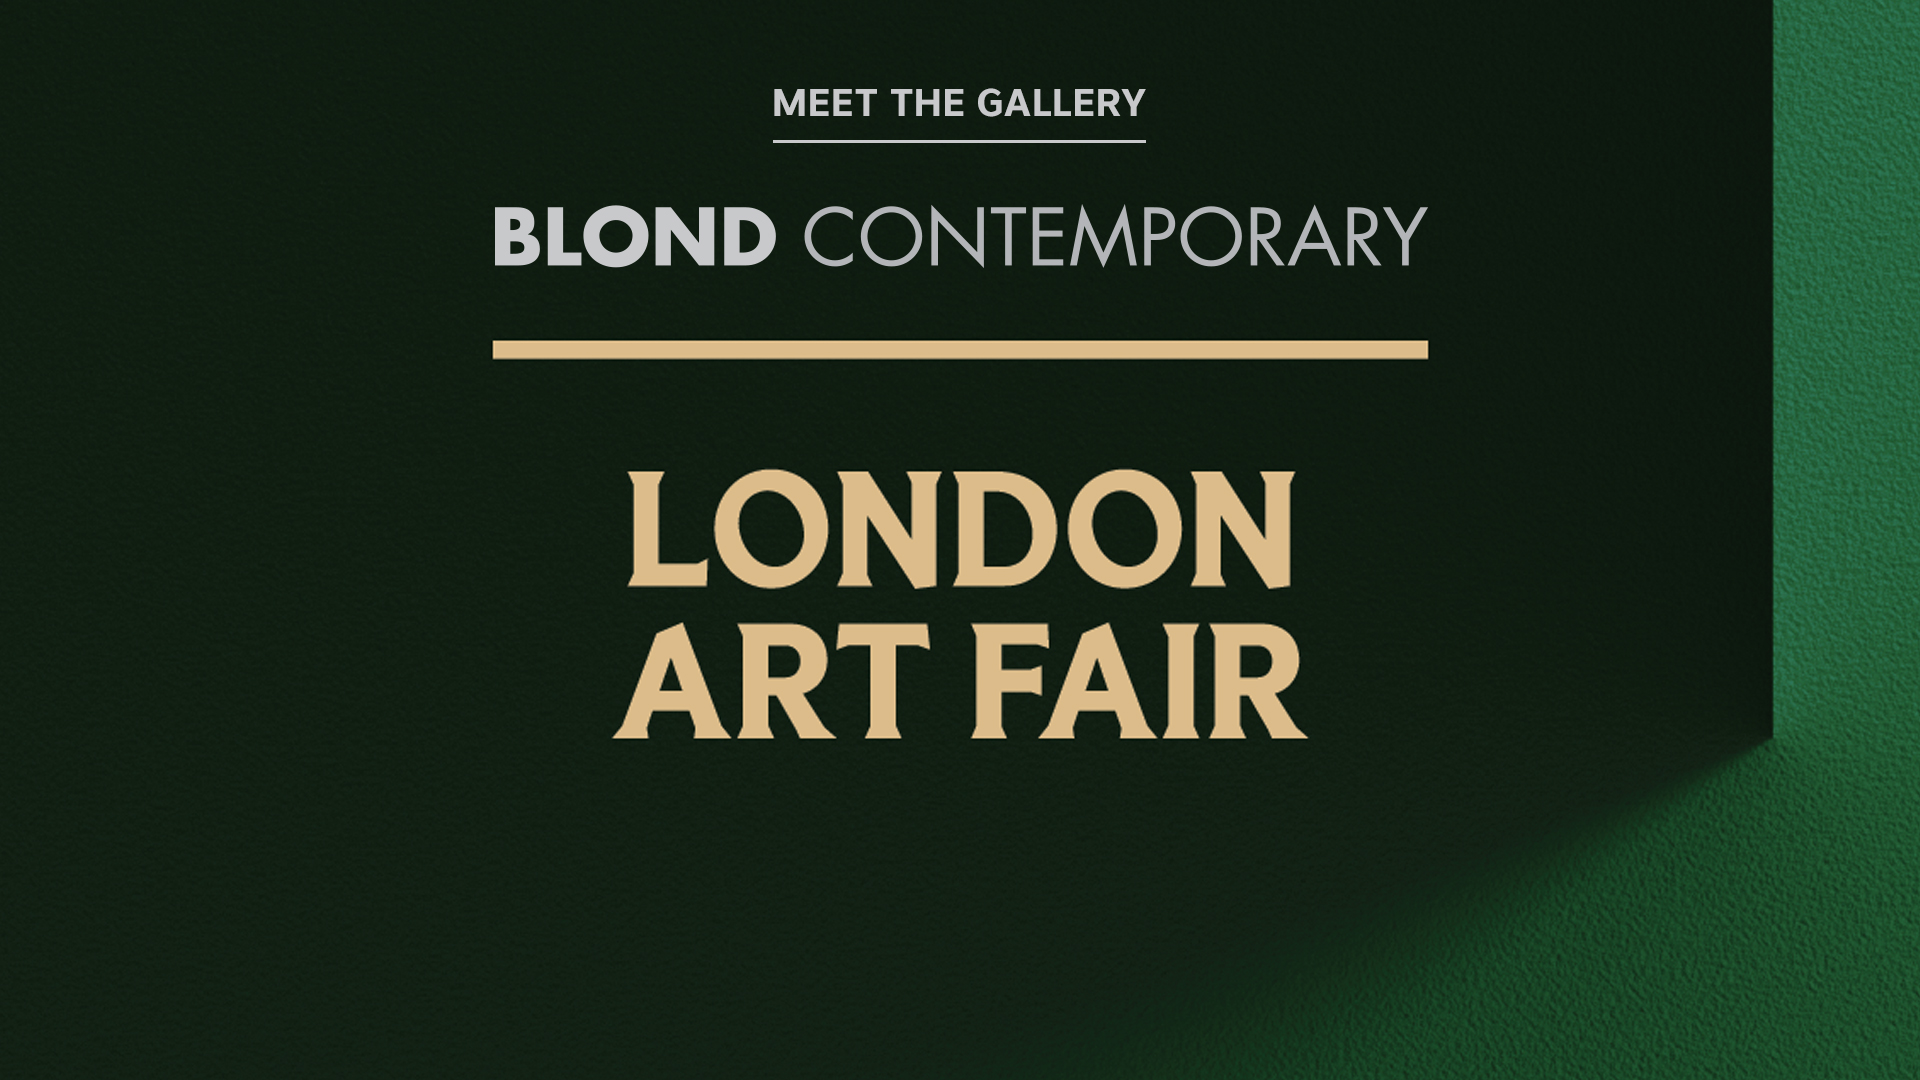 London Art Fair: Meet the Gallery